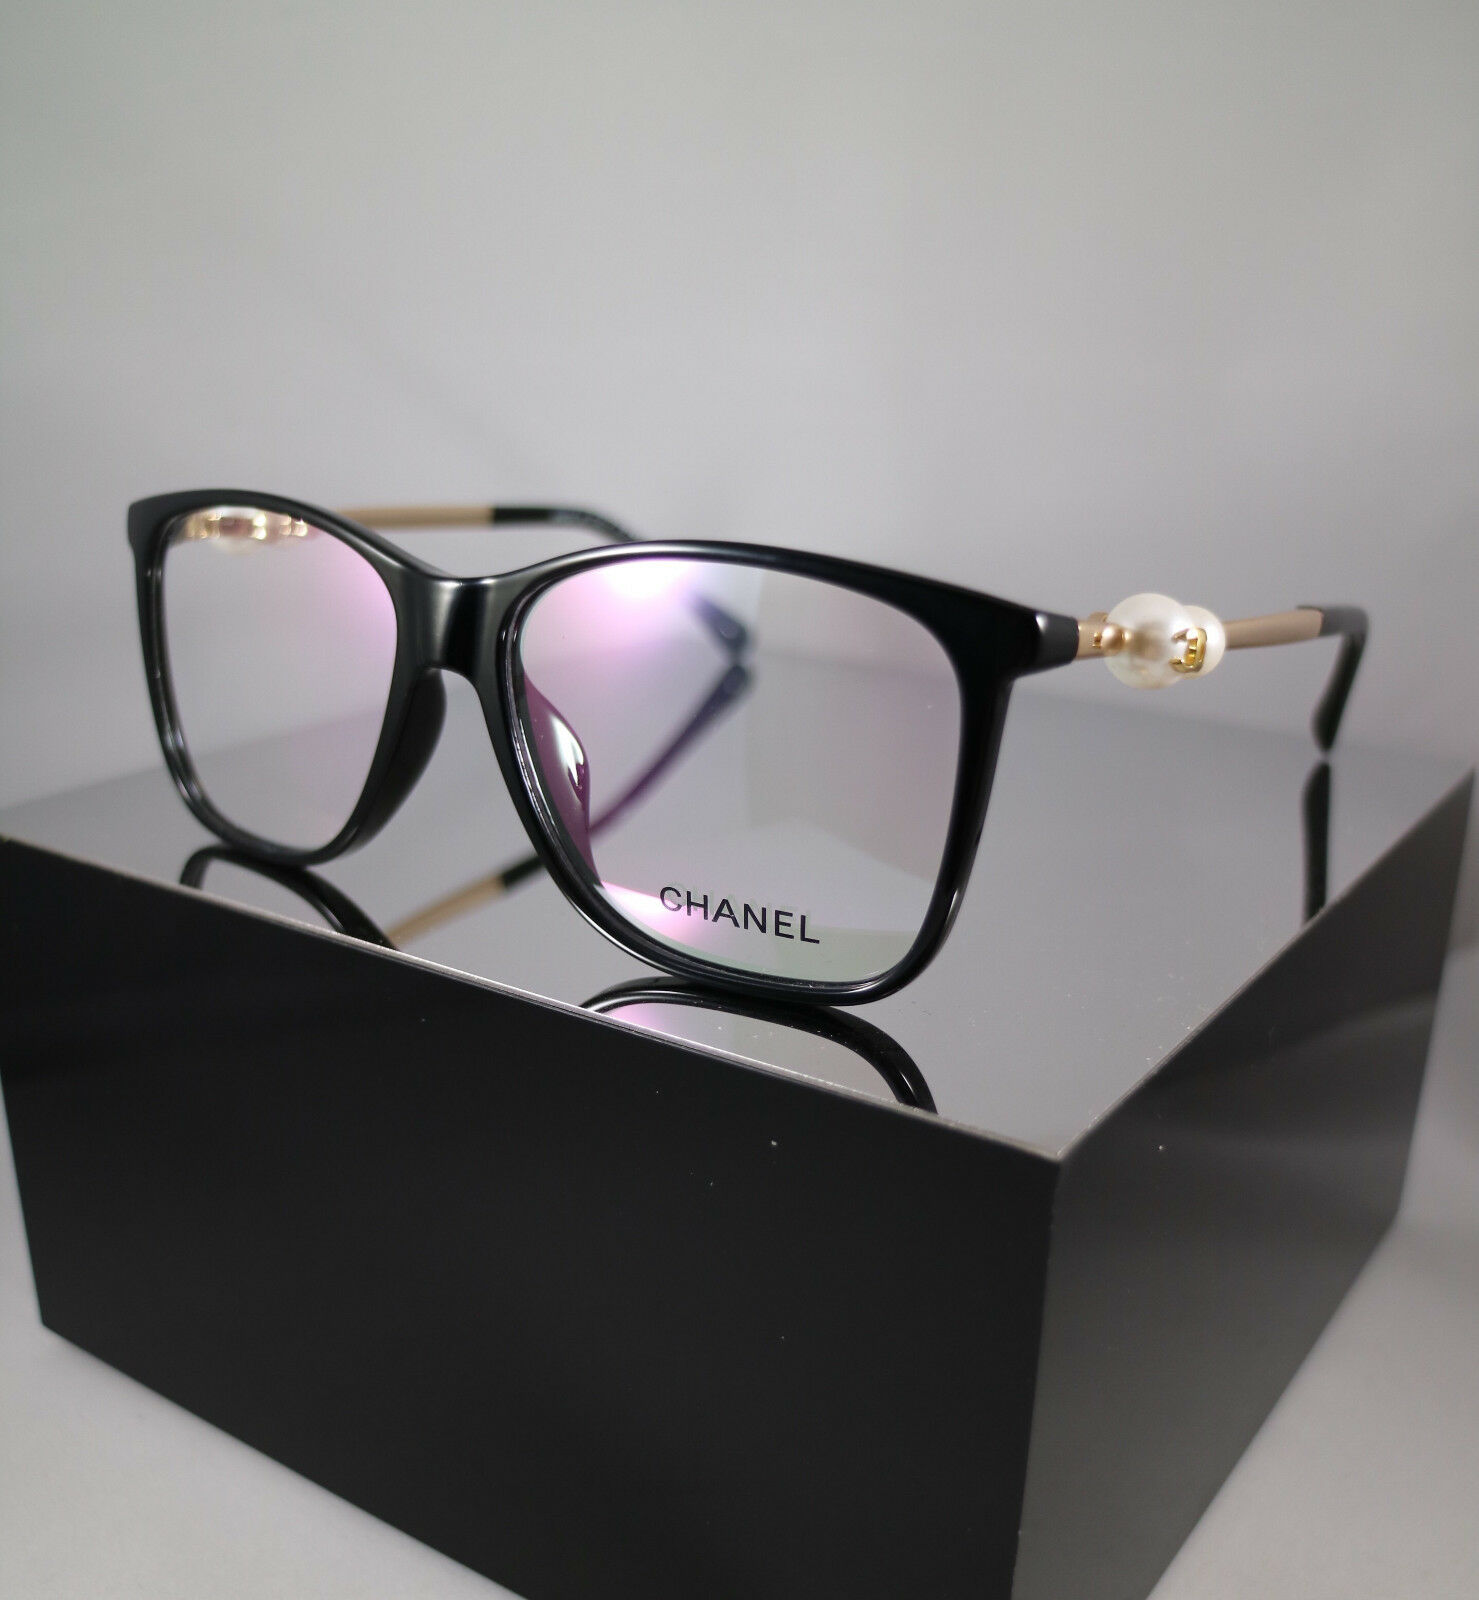 7e3c75e0d0 ... Chanel CH3330H C501 Pearl Eyeglasses Frames in Black and Gold